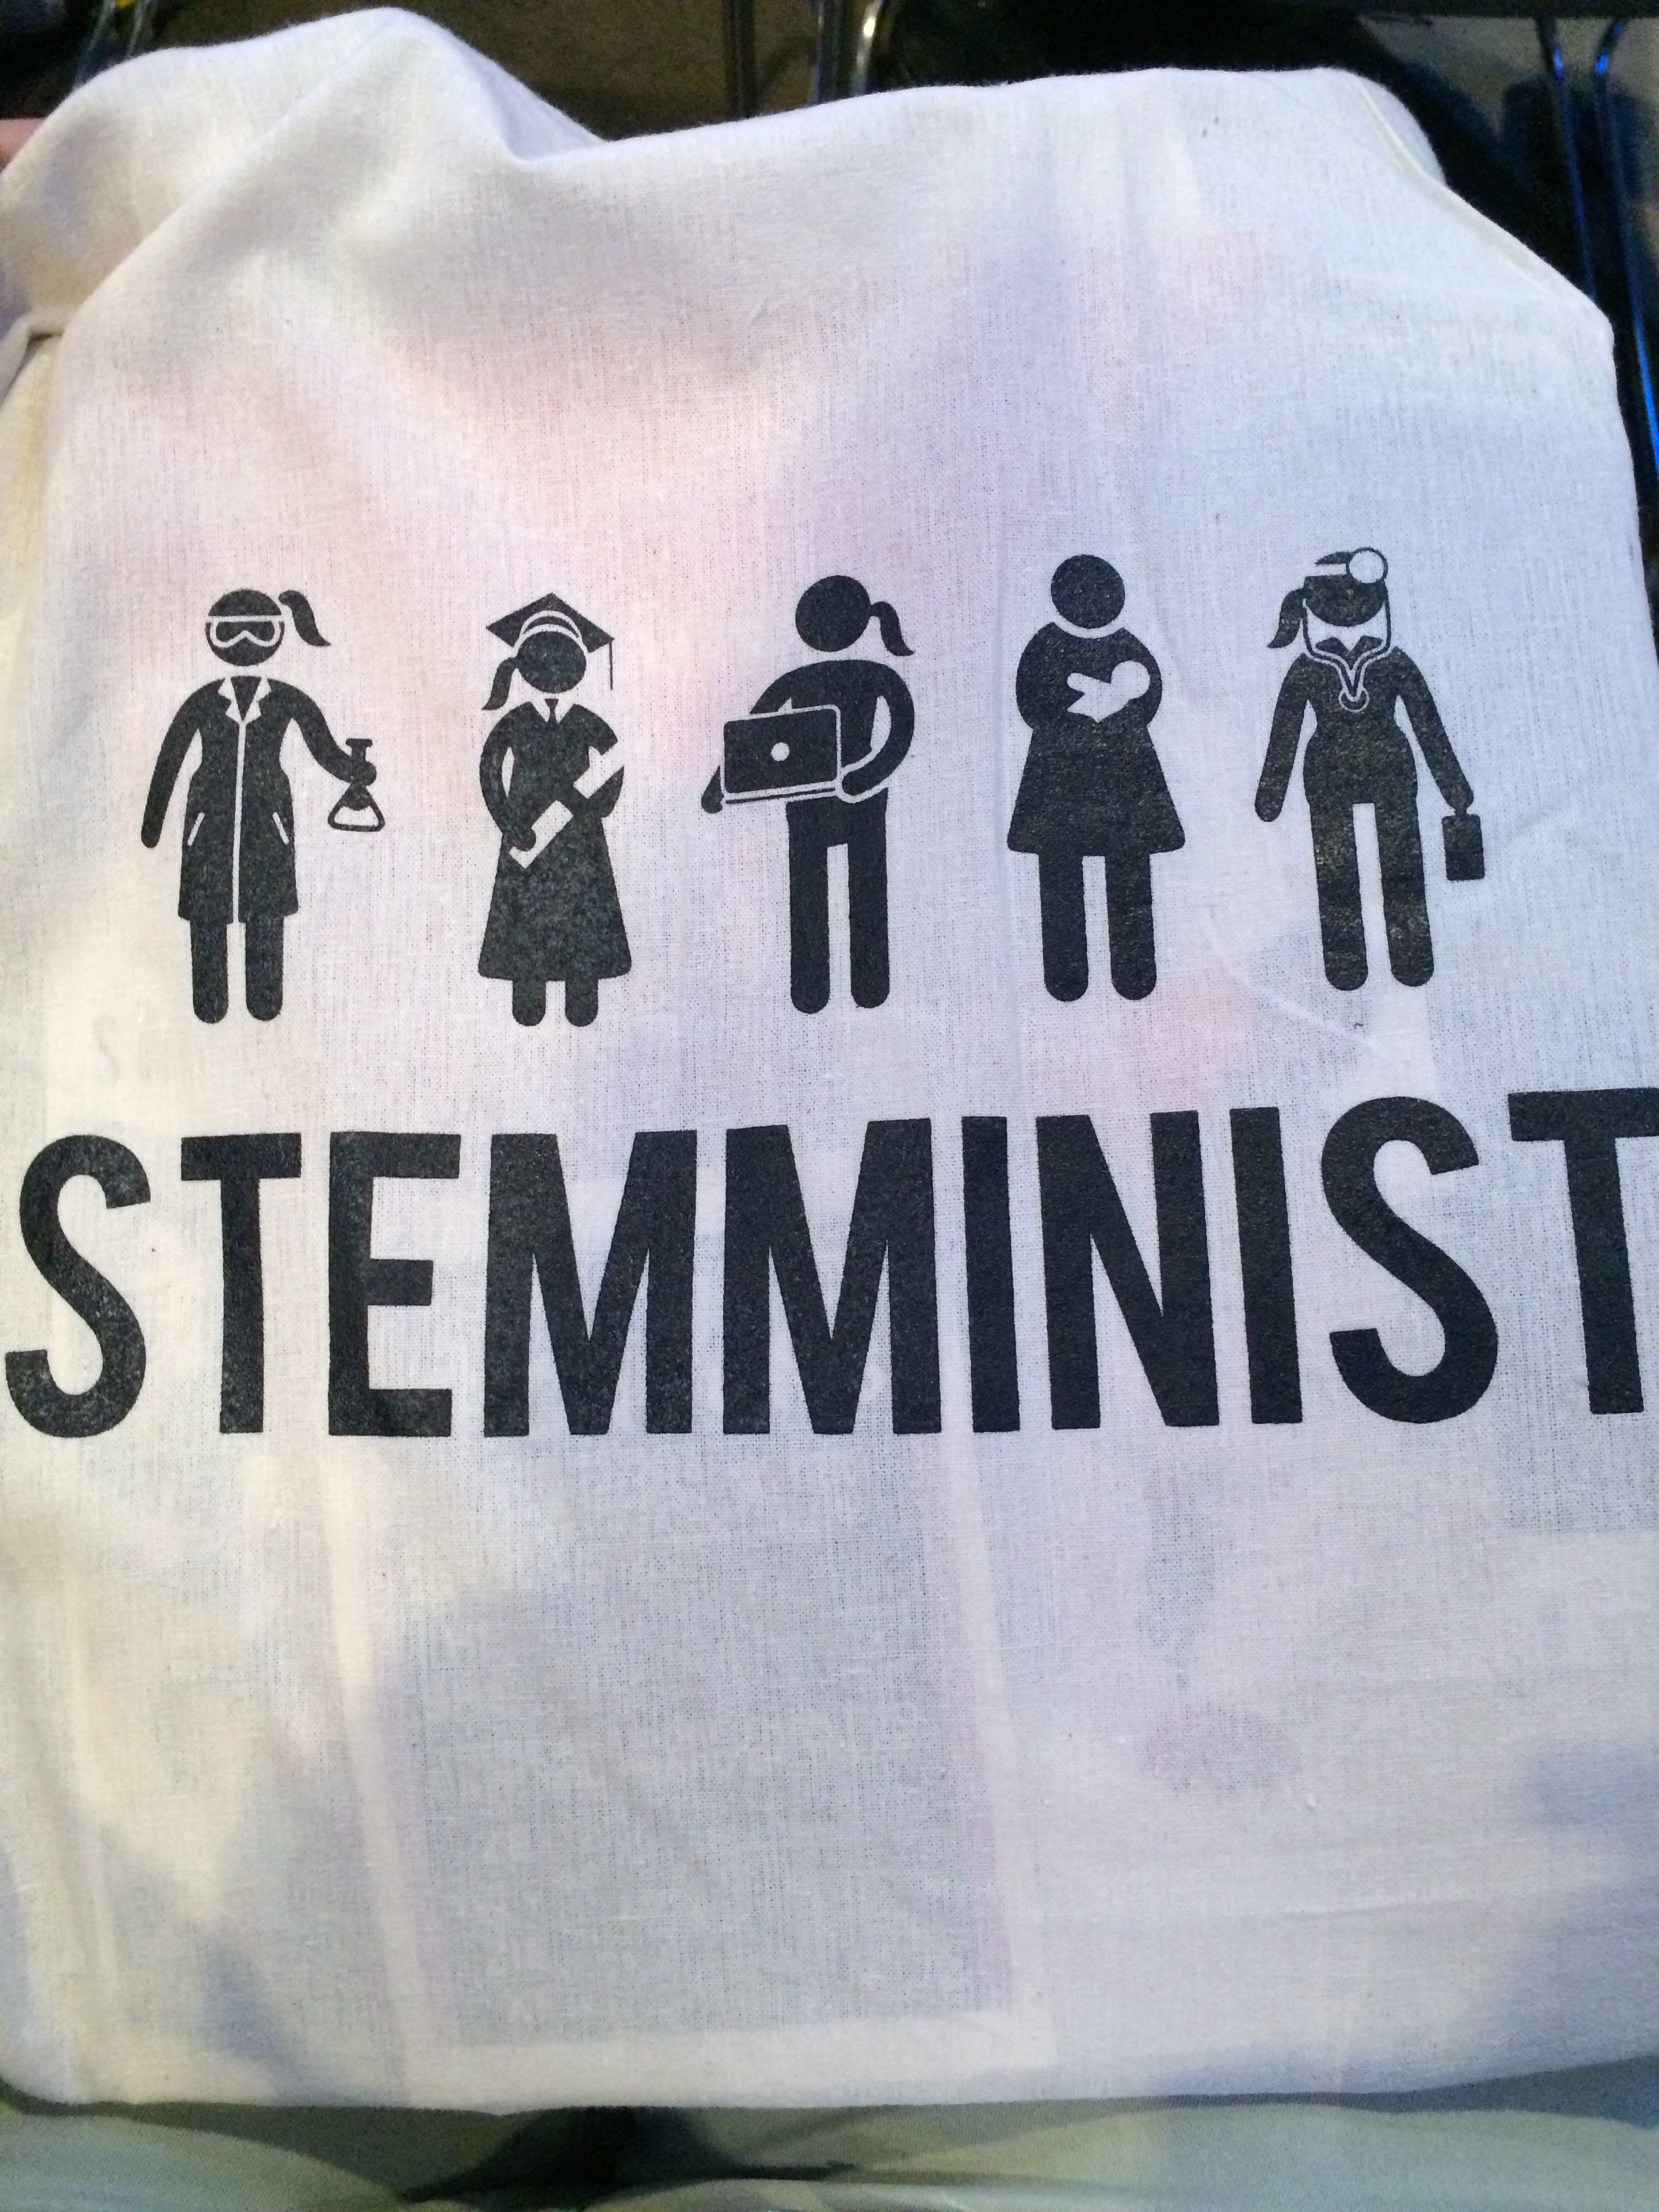 STEMMINIST - new vocabulary and swag.